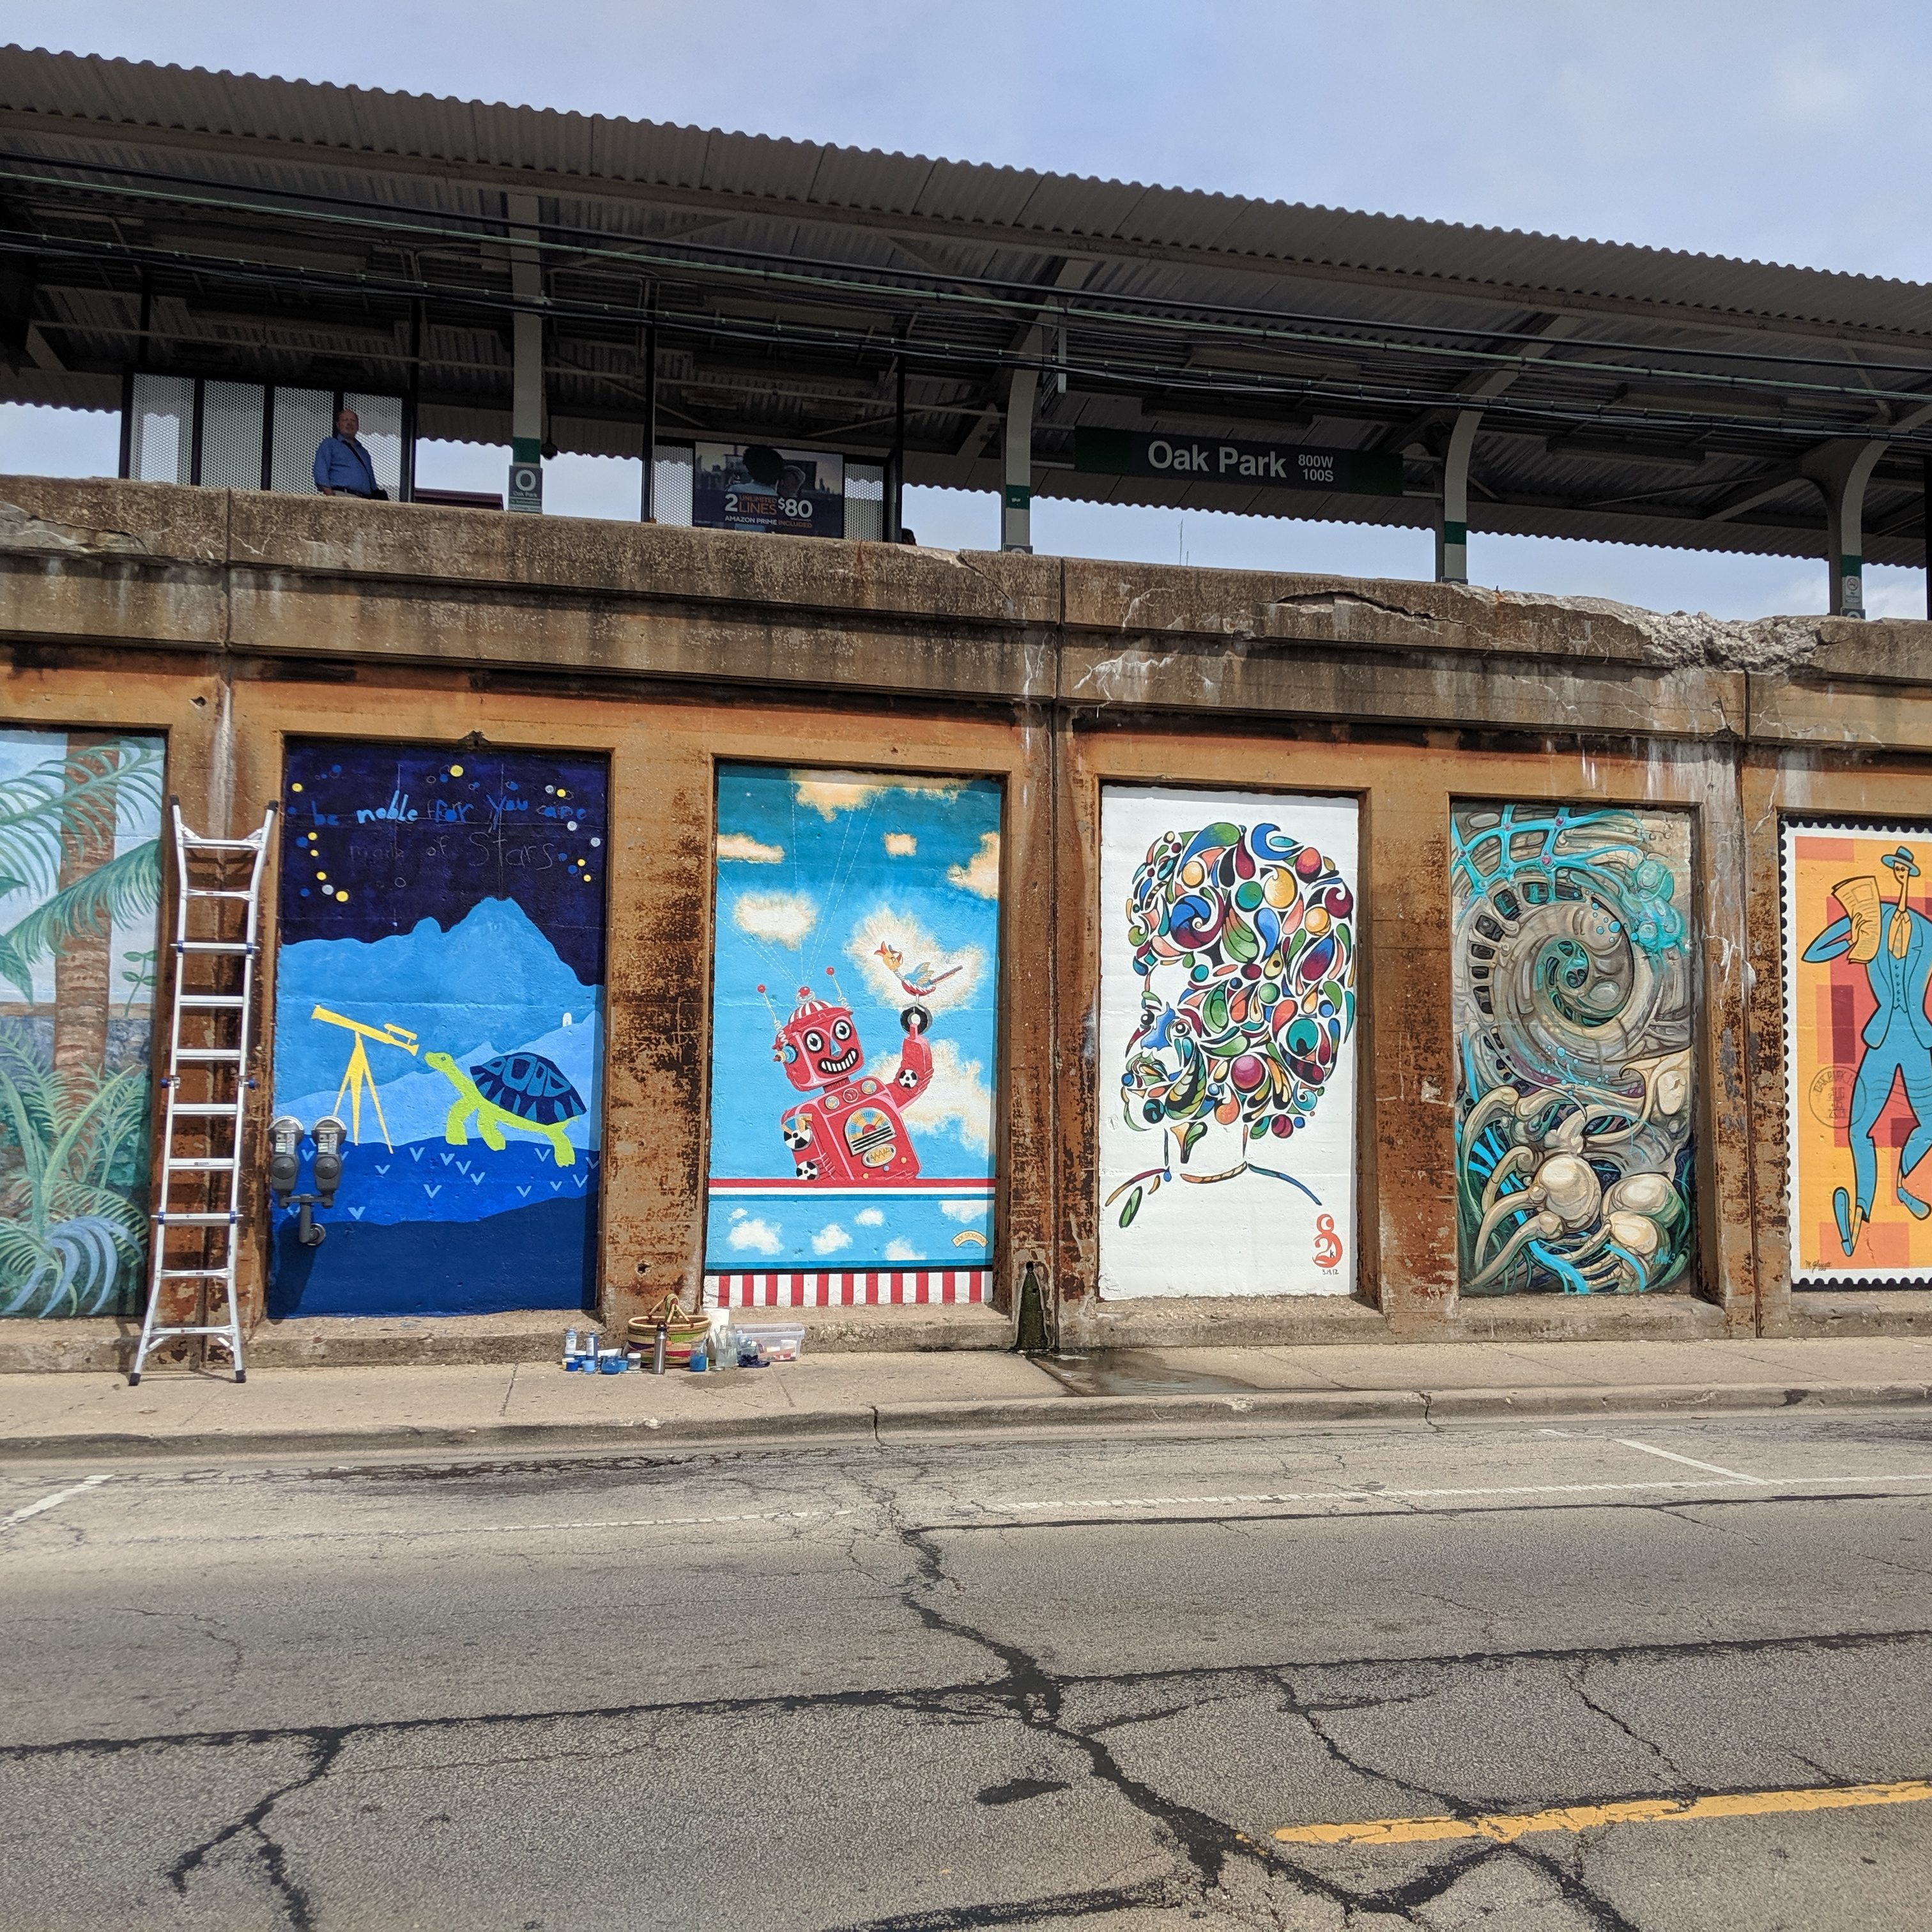 Oak Park Illinois Murals by Chicago Green Line Stop - Turtle and Inspirational quote mural by Laura Lynne Art